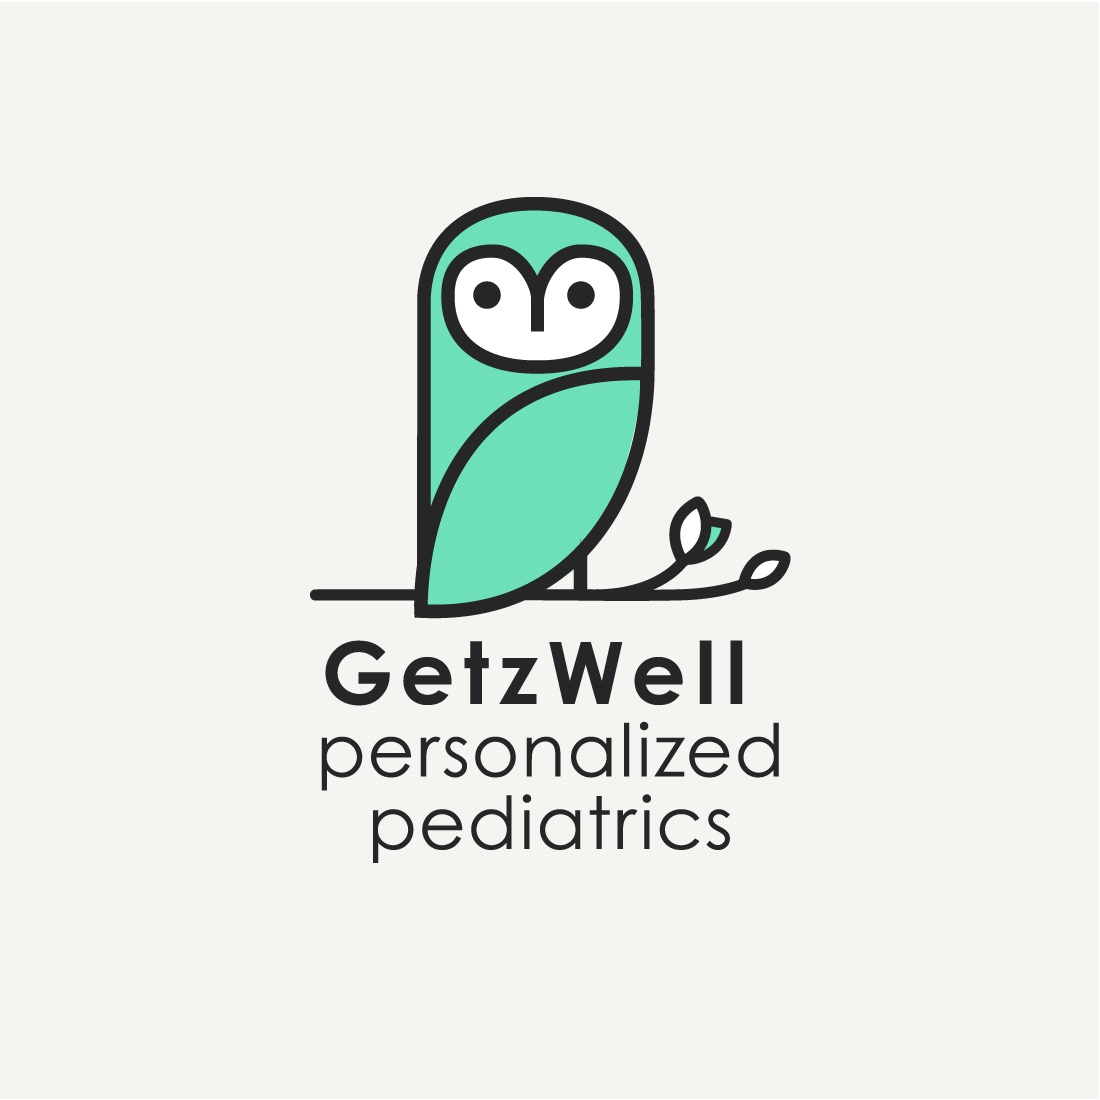 GetzWell Personalized Pediatrics logo logo san francisco pediatrician branch owl doctor